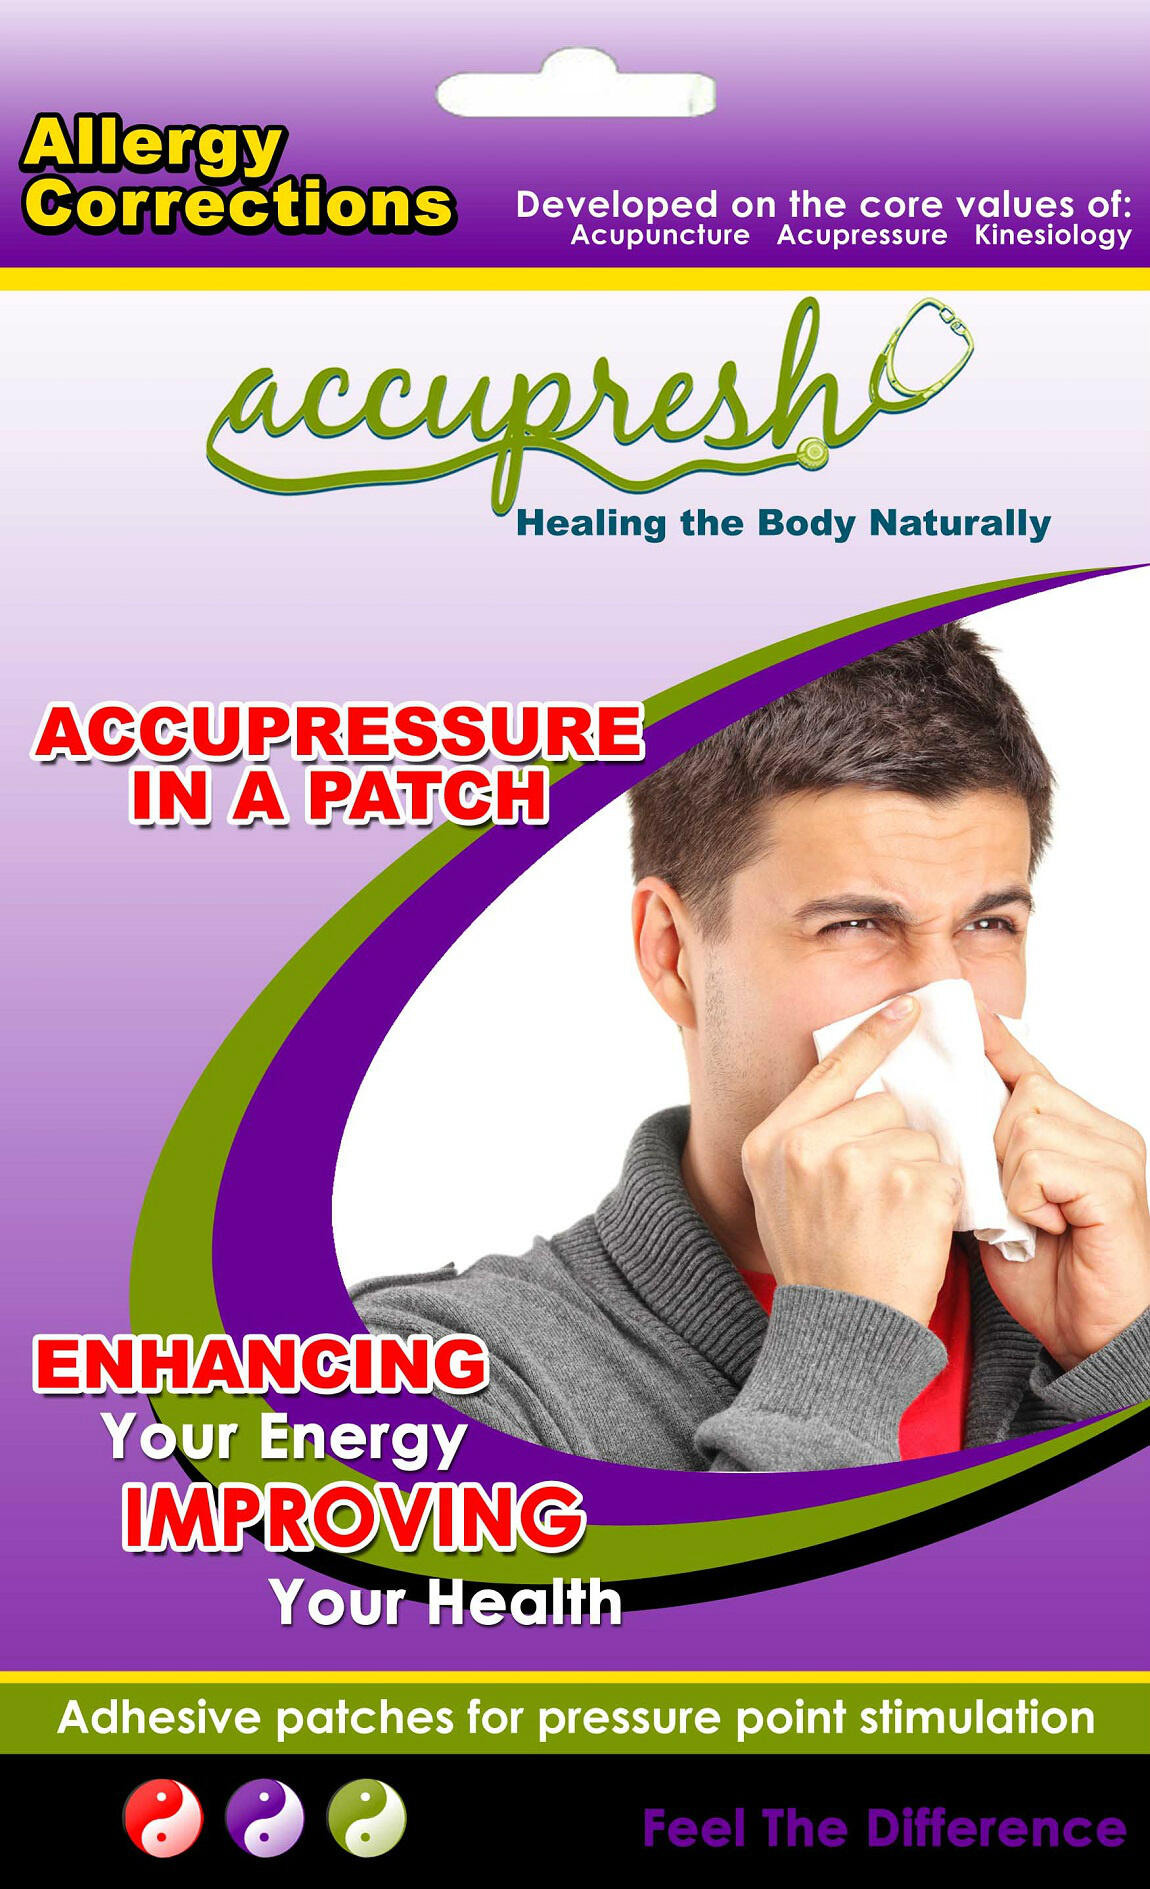 Are you suffering from allergies? We can definitely improve your tolerance levels and detoxify your body http://t.co/ZXQ9dlRSJc